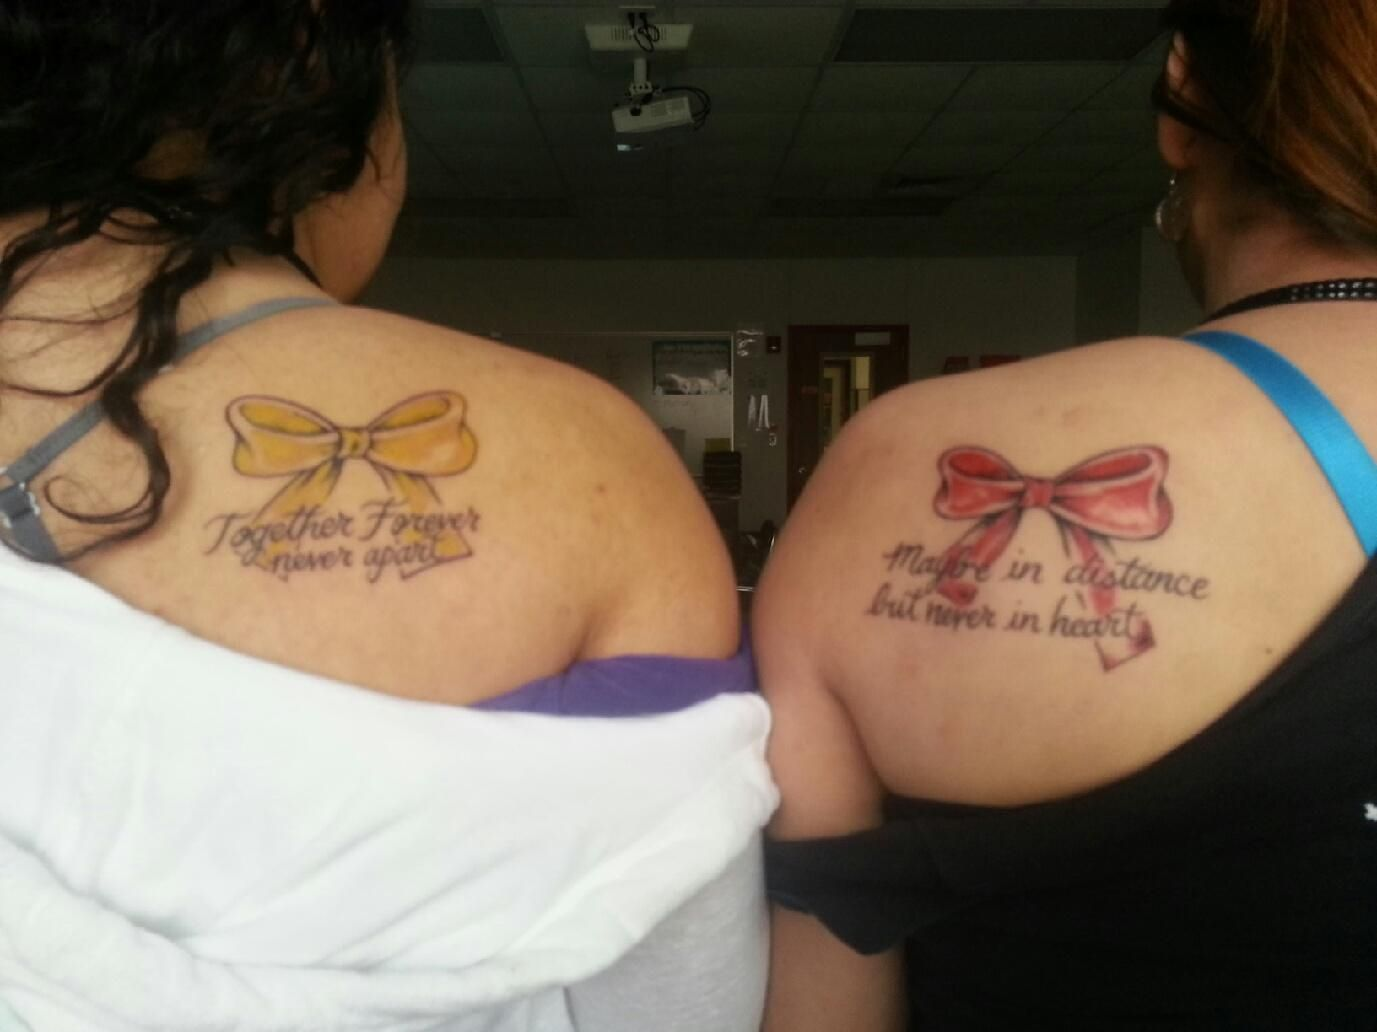 Pin always together forever tattoo picture at for Together forever tattoos